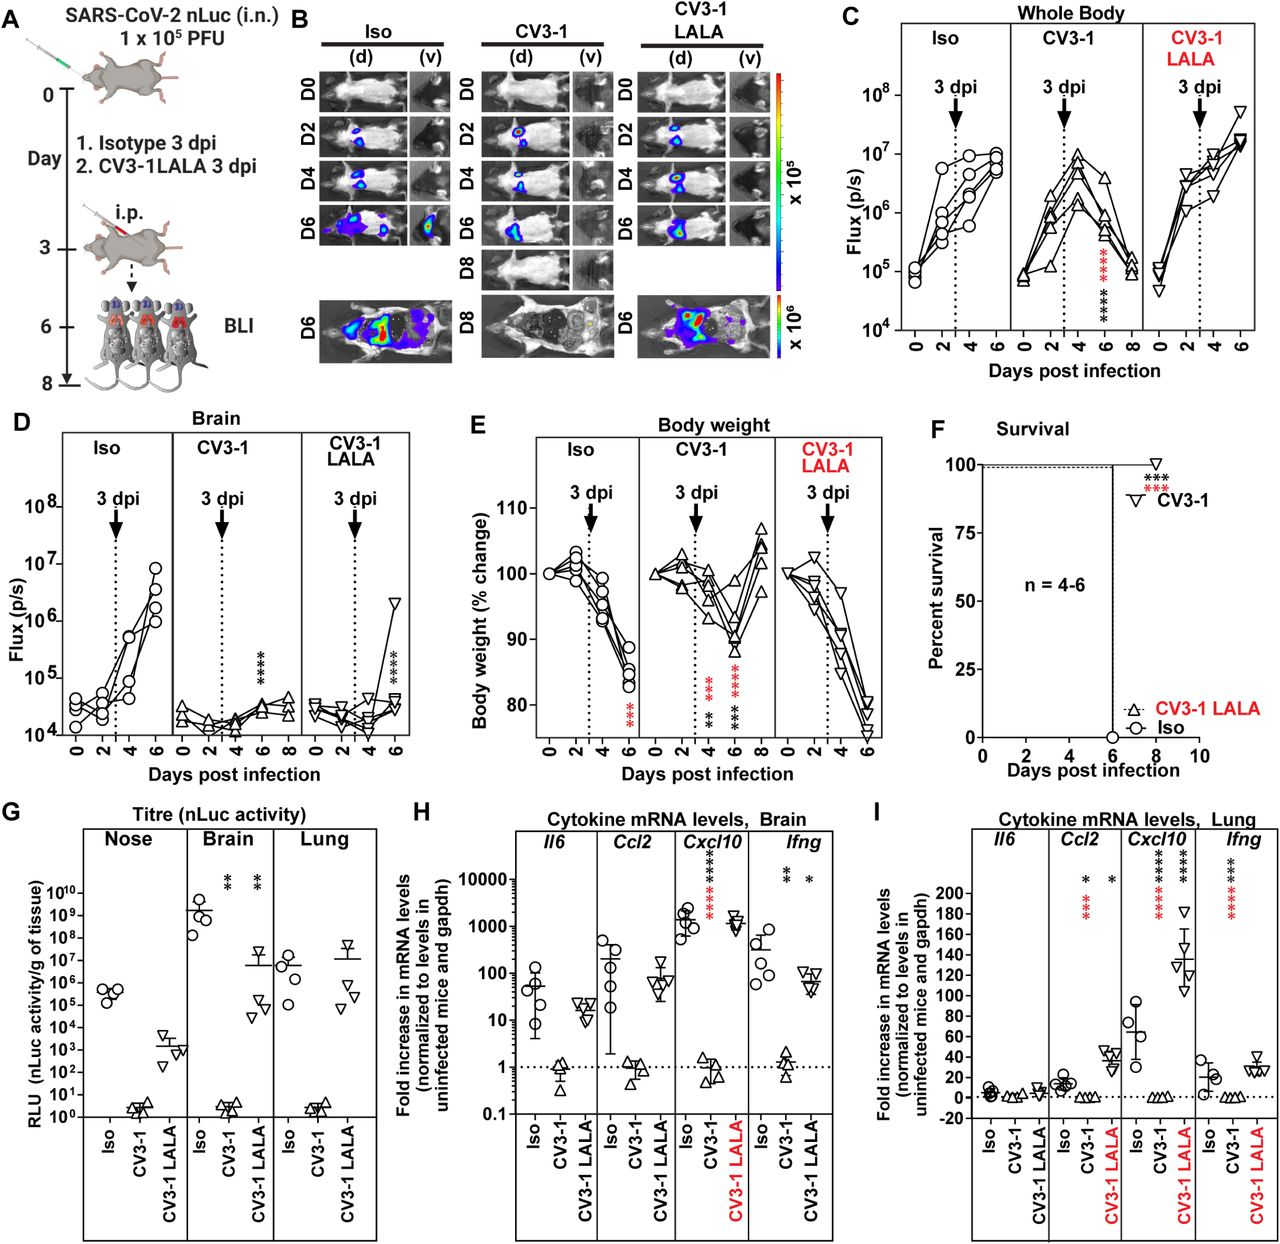 Fc-mediated Antibody Effector Functions Contribute to the In Vivo Efficacy of CV3-1 (A) Experimental design to test therapeutic efficacy of NAb CV3-1 and its corresponding Leucine to Alanine (LALA) mutant administered ip (12.5 mg/kg body weight) 3 dpi to K18-hACE2 mice challenged with SARS-CoV-2 nLuc followed by non-invasive BLI every 2 days. Human IgG1-treated (12.5 mg/kg body weight) mice were used as the control cohort. (B) Representative images from temporal BLI of SARS-CoV-2-nLuc-infected mice in ventral (v) and dorsal (d) positions at the indicated dpi and after necropsy. Scale bars denote radiance (photons/sec/cm 2 /steradian). (C-D) Temporal quantification of nLuc signal acquired non-invasively as flux (photons/sec) in indicated regions. (E) Temporal changes in mouse body weight at indicated dpi with initial body weight set to 100%. (F) Kaplan-Meier survival curves of mice statistically compared by log-rank (Mantel-Cox) test. for experiment as in A. (G) Viral loads (nLuc activity/g) in indicated organs using Vero E6 cells as targets. Undetectable virus amounts were set to 1. (H, I) Cytokine mRNA levels in lung and brain tissues after necropsy. The values were normalized to Gapdh in the same sample and that in uninfected mice. Viral loads (G) and inflammatory cytokine profile (H, I) was determined after necropsy at times indicated in B. Each curve in (C)-(E) and each data point in (G)-(I) represents an individual mouse. CV3-1 treatment times are indicated in (C)-(E). Grouped data in (C)-(I) were analyzed by 2-way ANOVA followed by Dunnett's or Tukey's multiple comparison tests. Statistical significance for group comparisons to isotype control are shown in black and between CV3-1 and CV3-1 LALA treated cohorts are shown in red. ∗, p